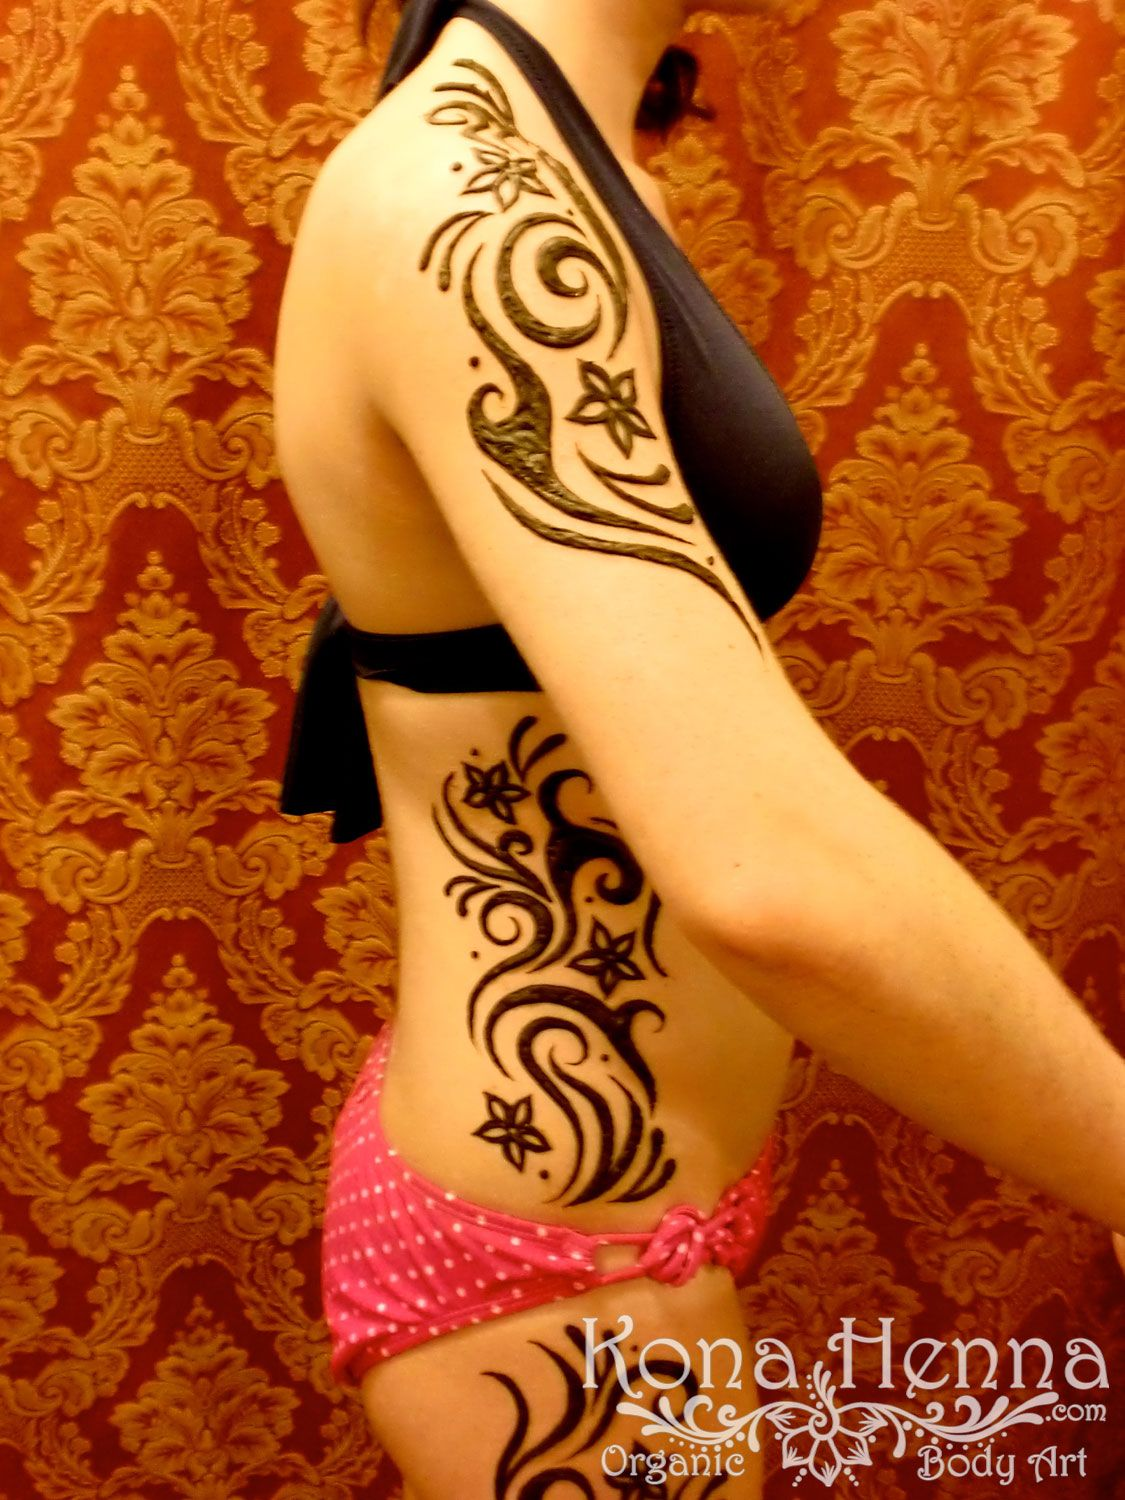 Henna Gallery Full Body Kona Henna Studio Hawaii Tatto Henna